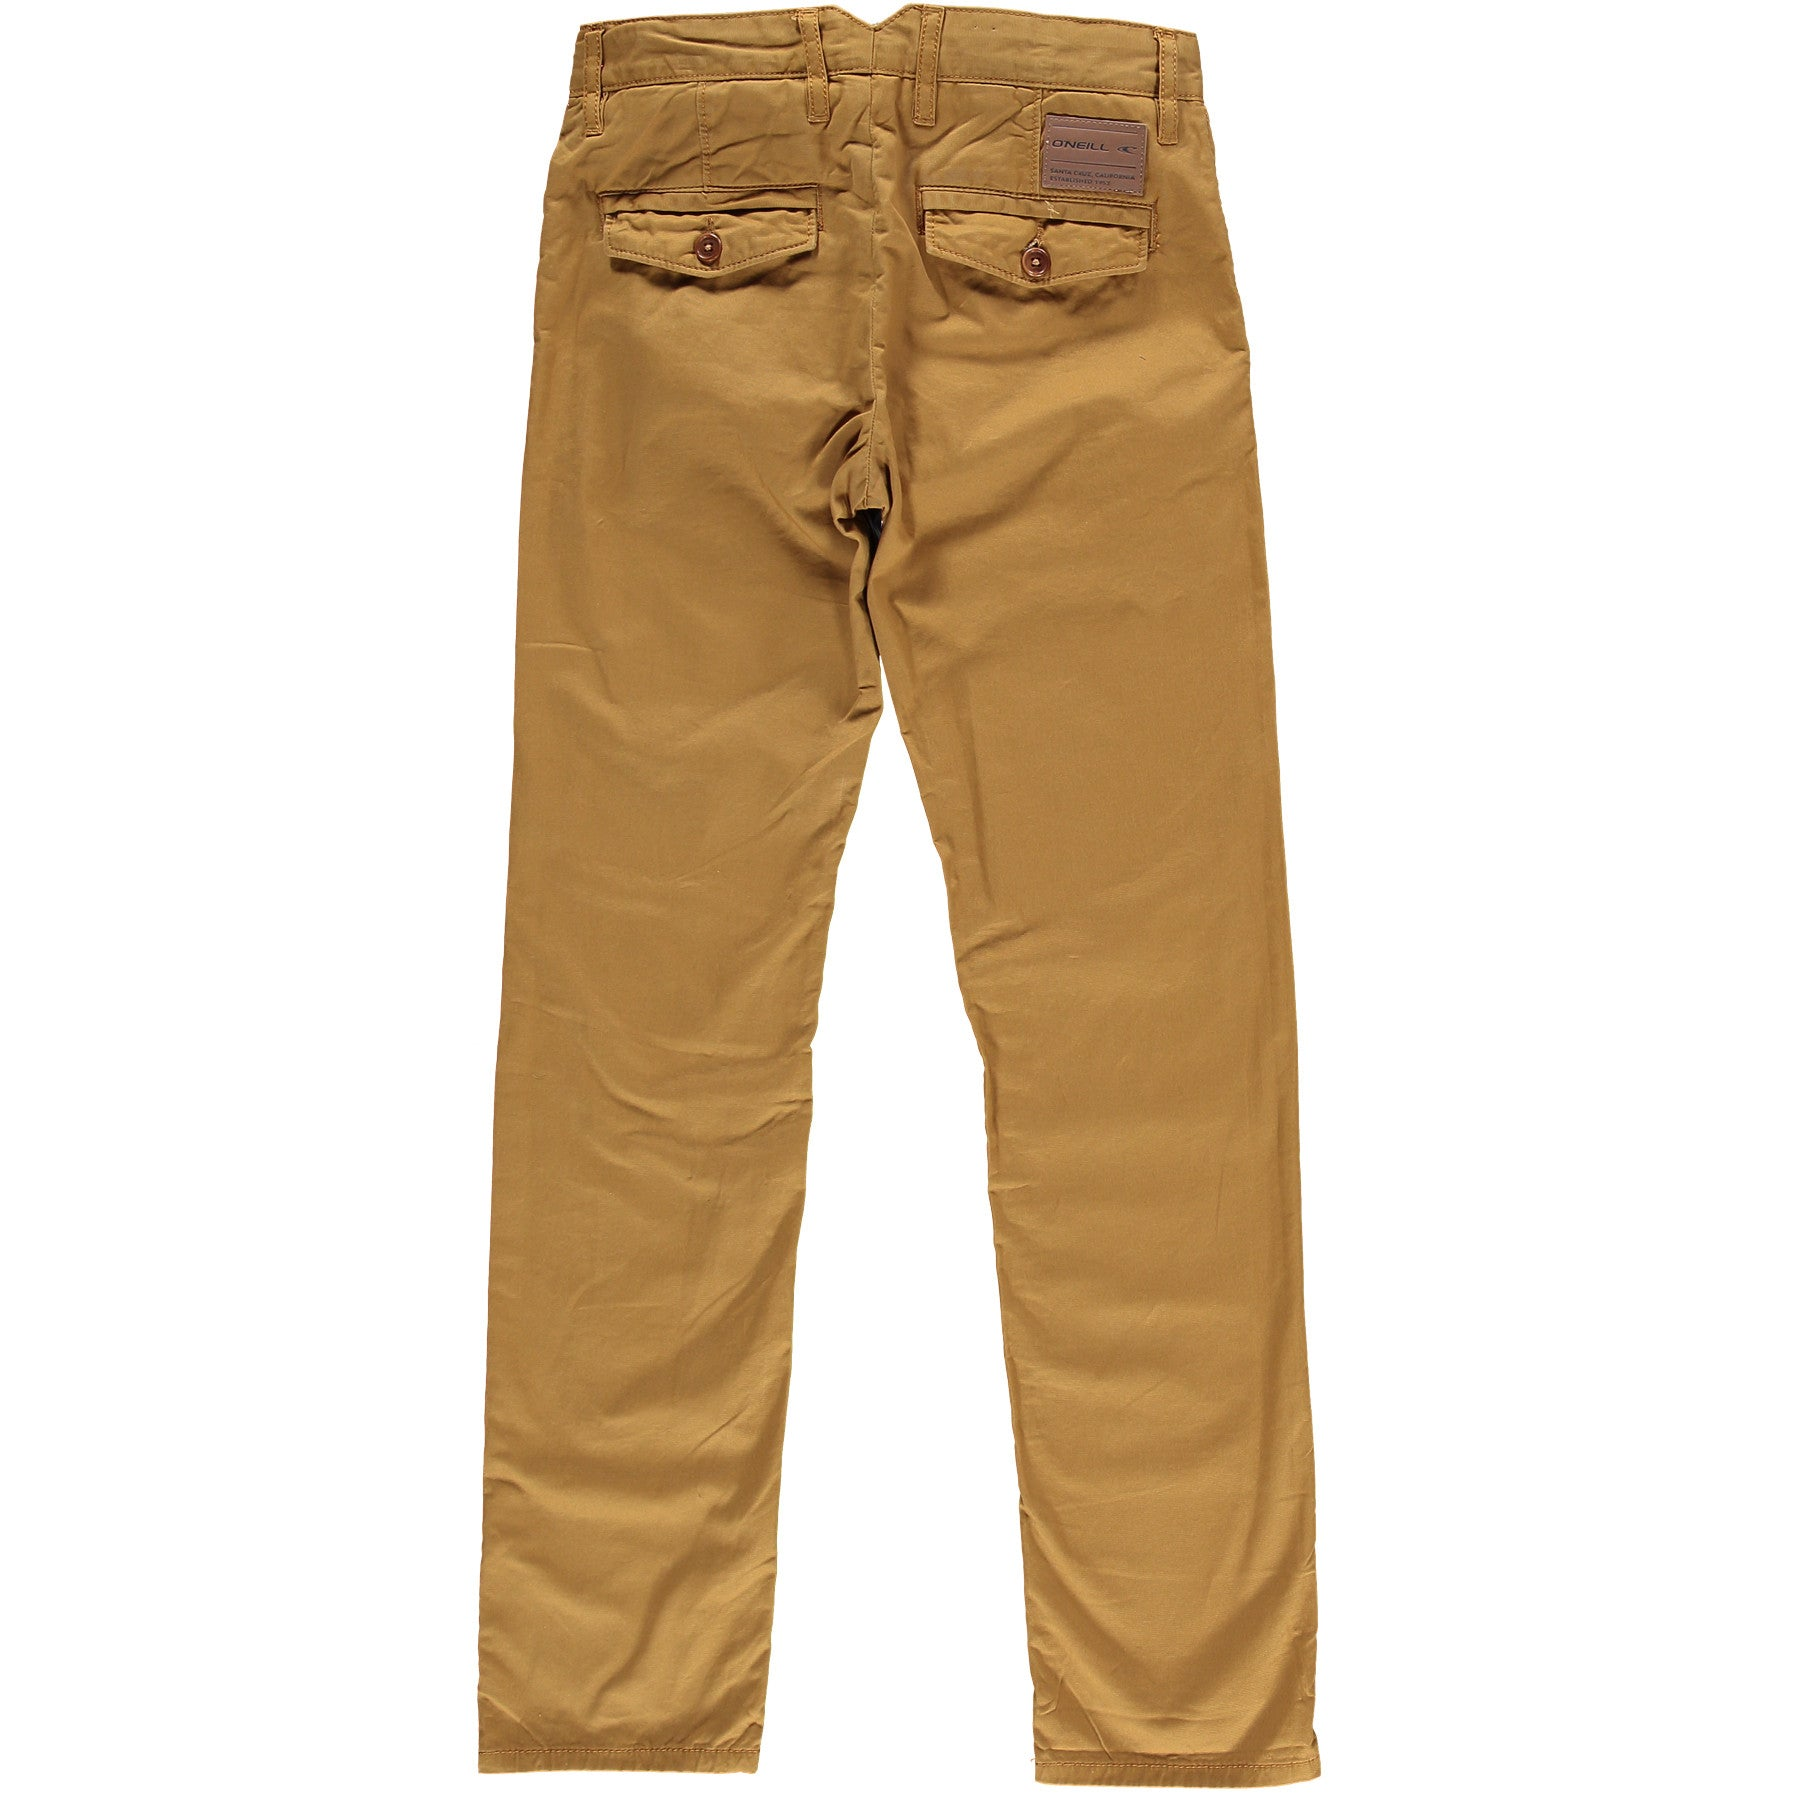 Kids Friday night chino Golden brown - Stoked Boardshop  - 2